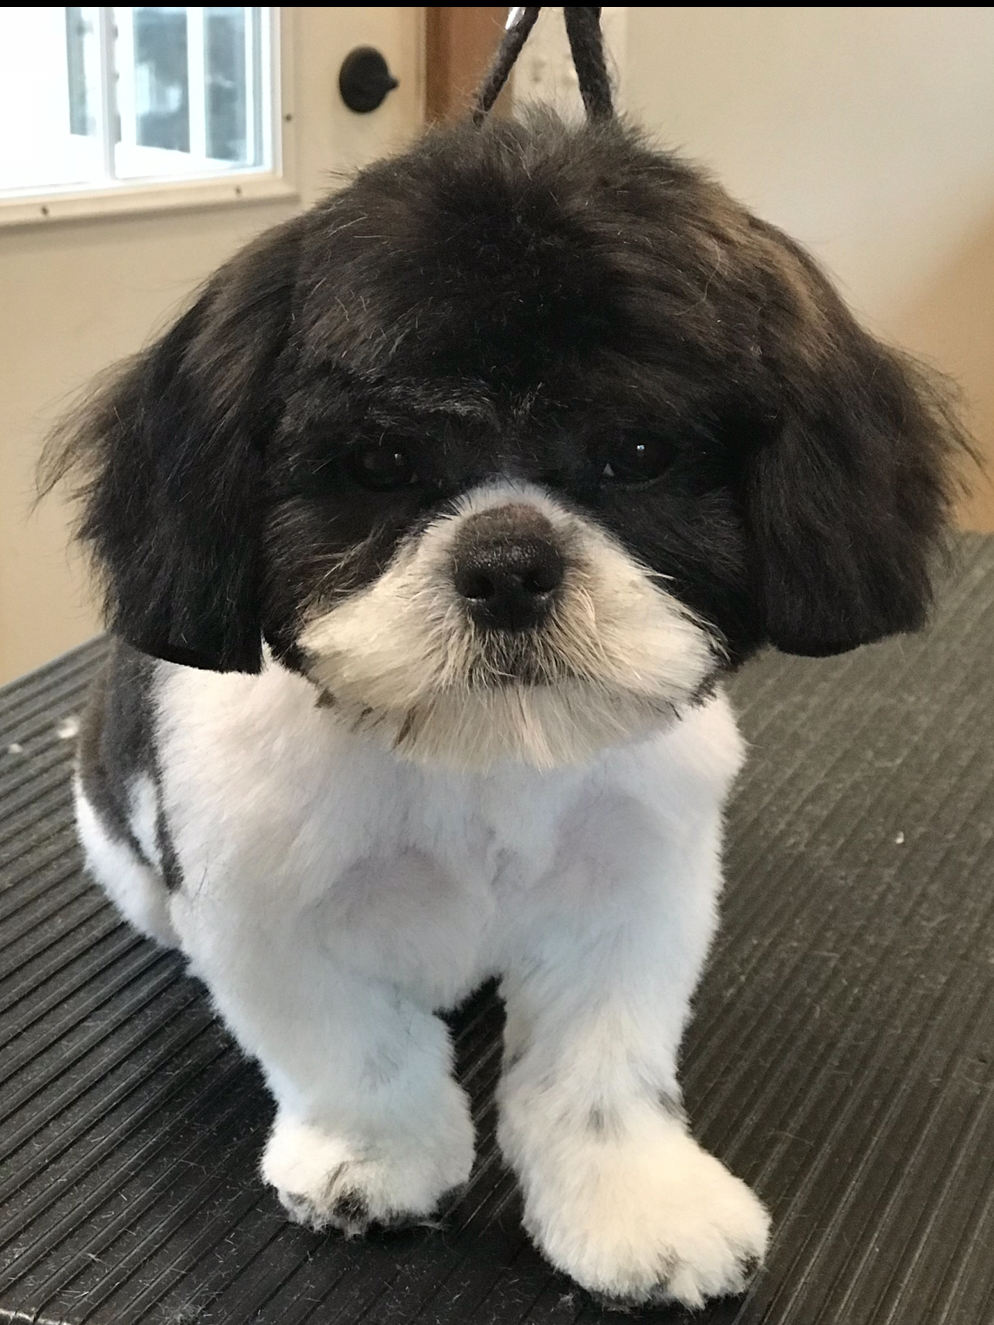 Mobile dog grooming, mobile Cat Grooming, St. Augustine Florida, 32092, Pet Salon, Grooming, Curbside, Mobile Grooming, Dog and Cat Grooming, nail trimming, ear cleaning, bathing, medicated baths, anal glands expressed, flea and tick preventative,